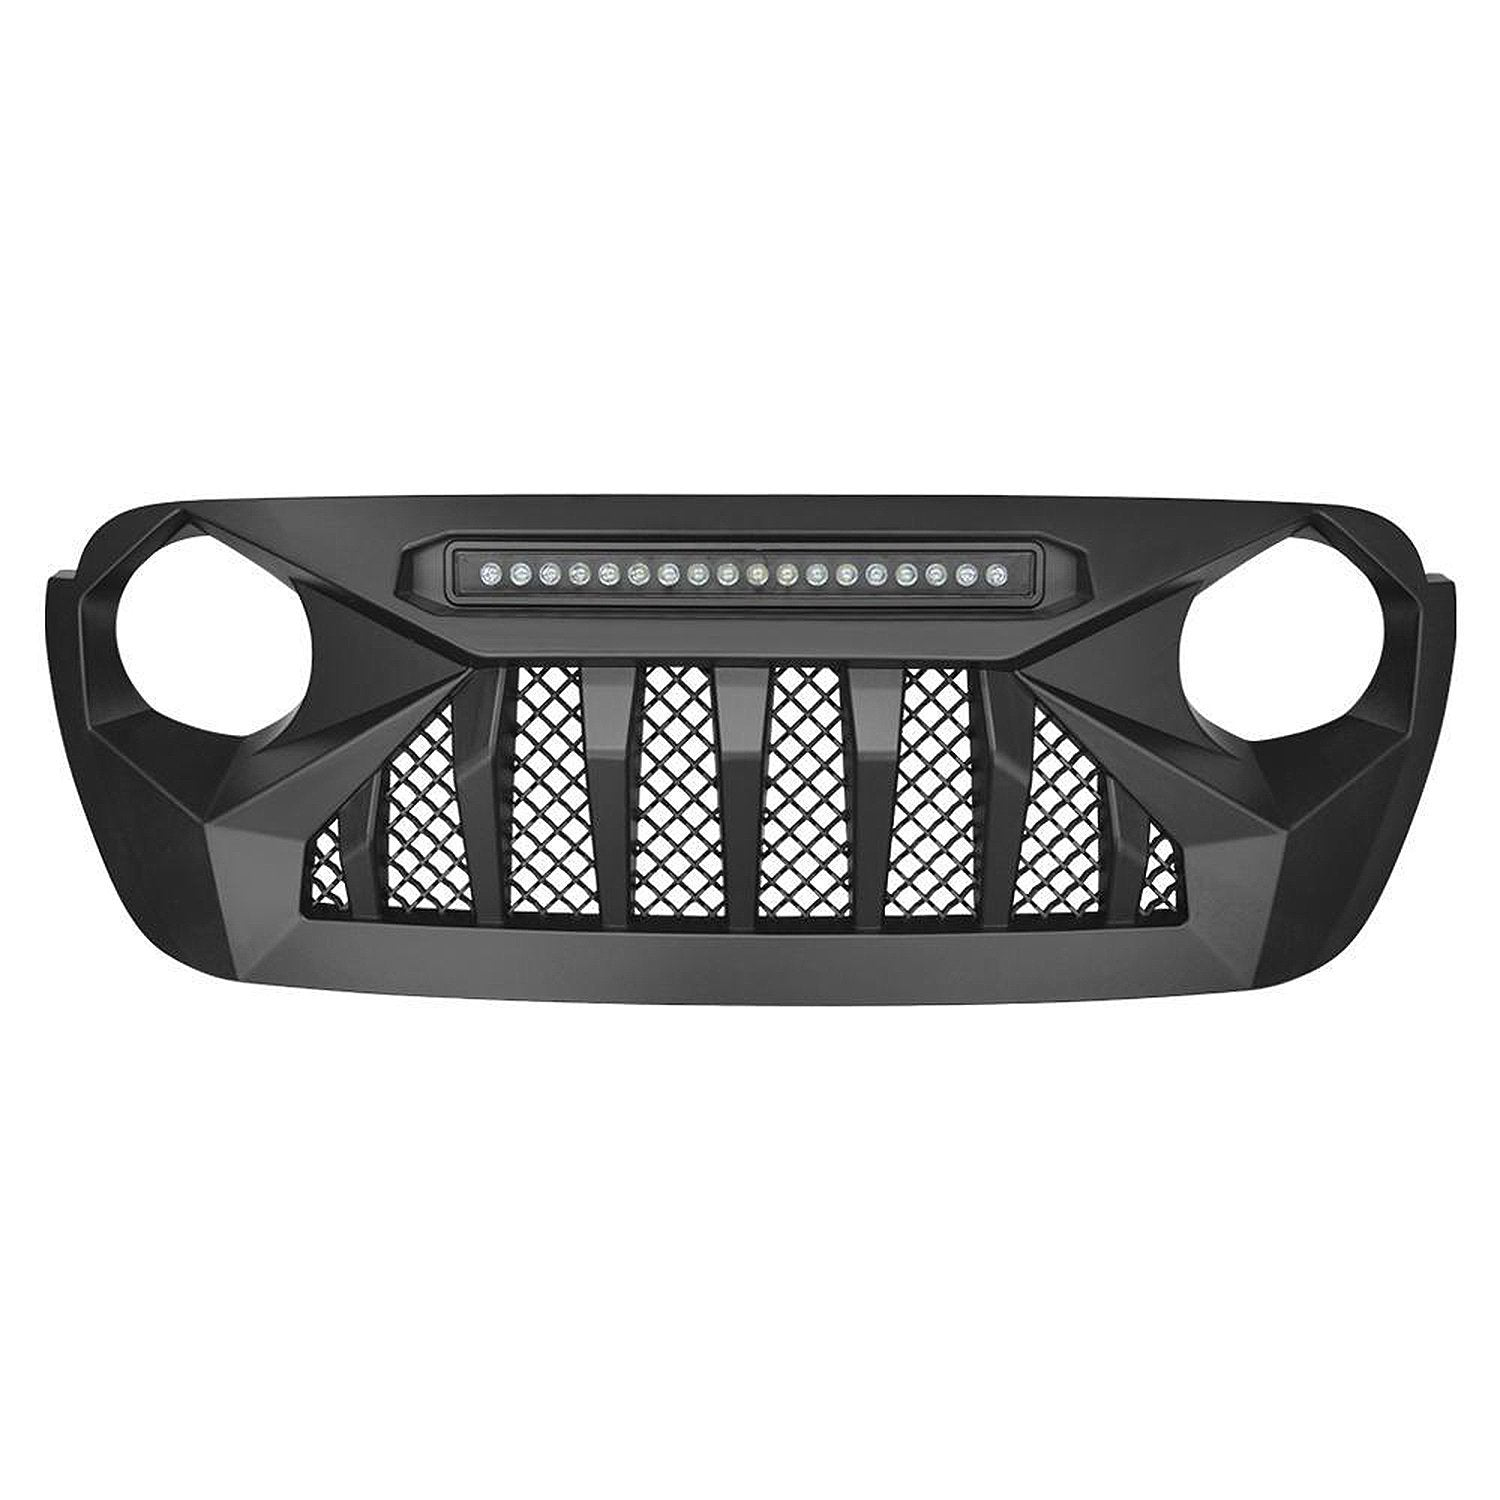 [Pre-Order]Demon Grille w/LED Lights for 18-20 JL & Gladiator